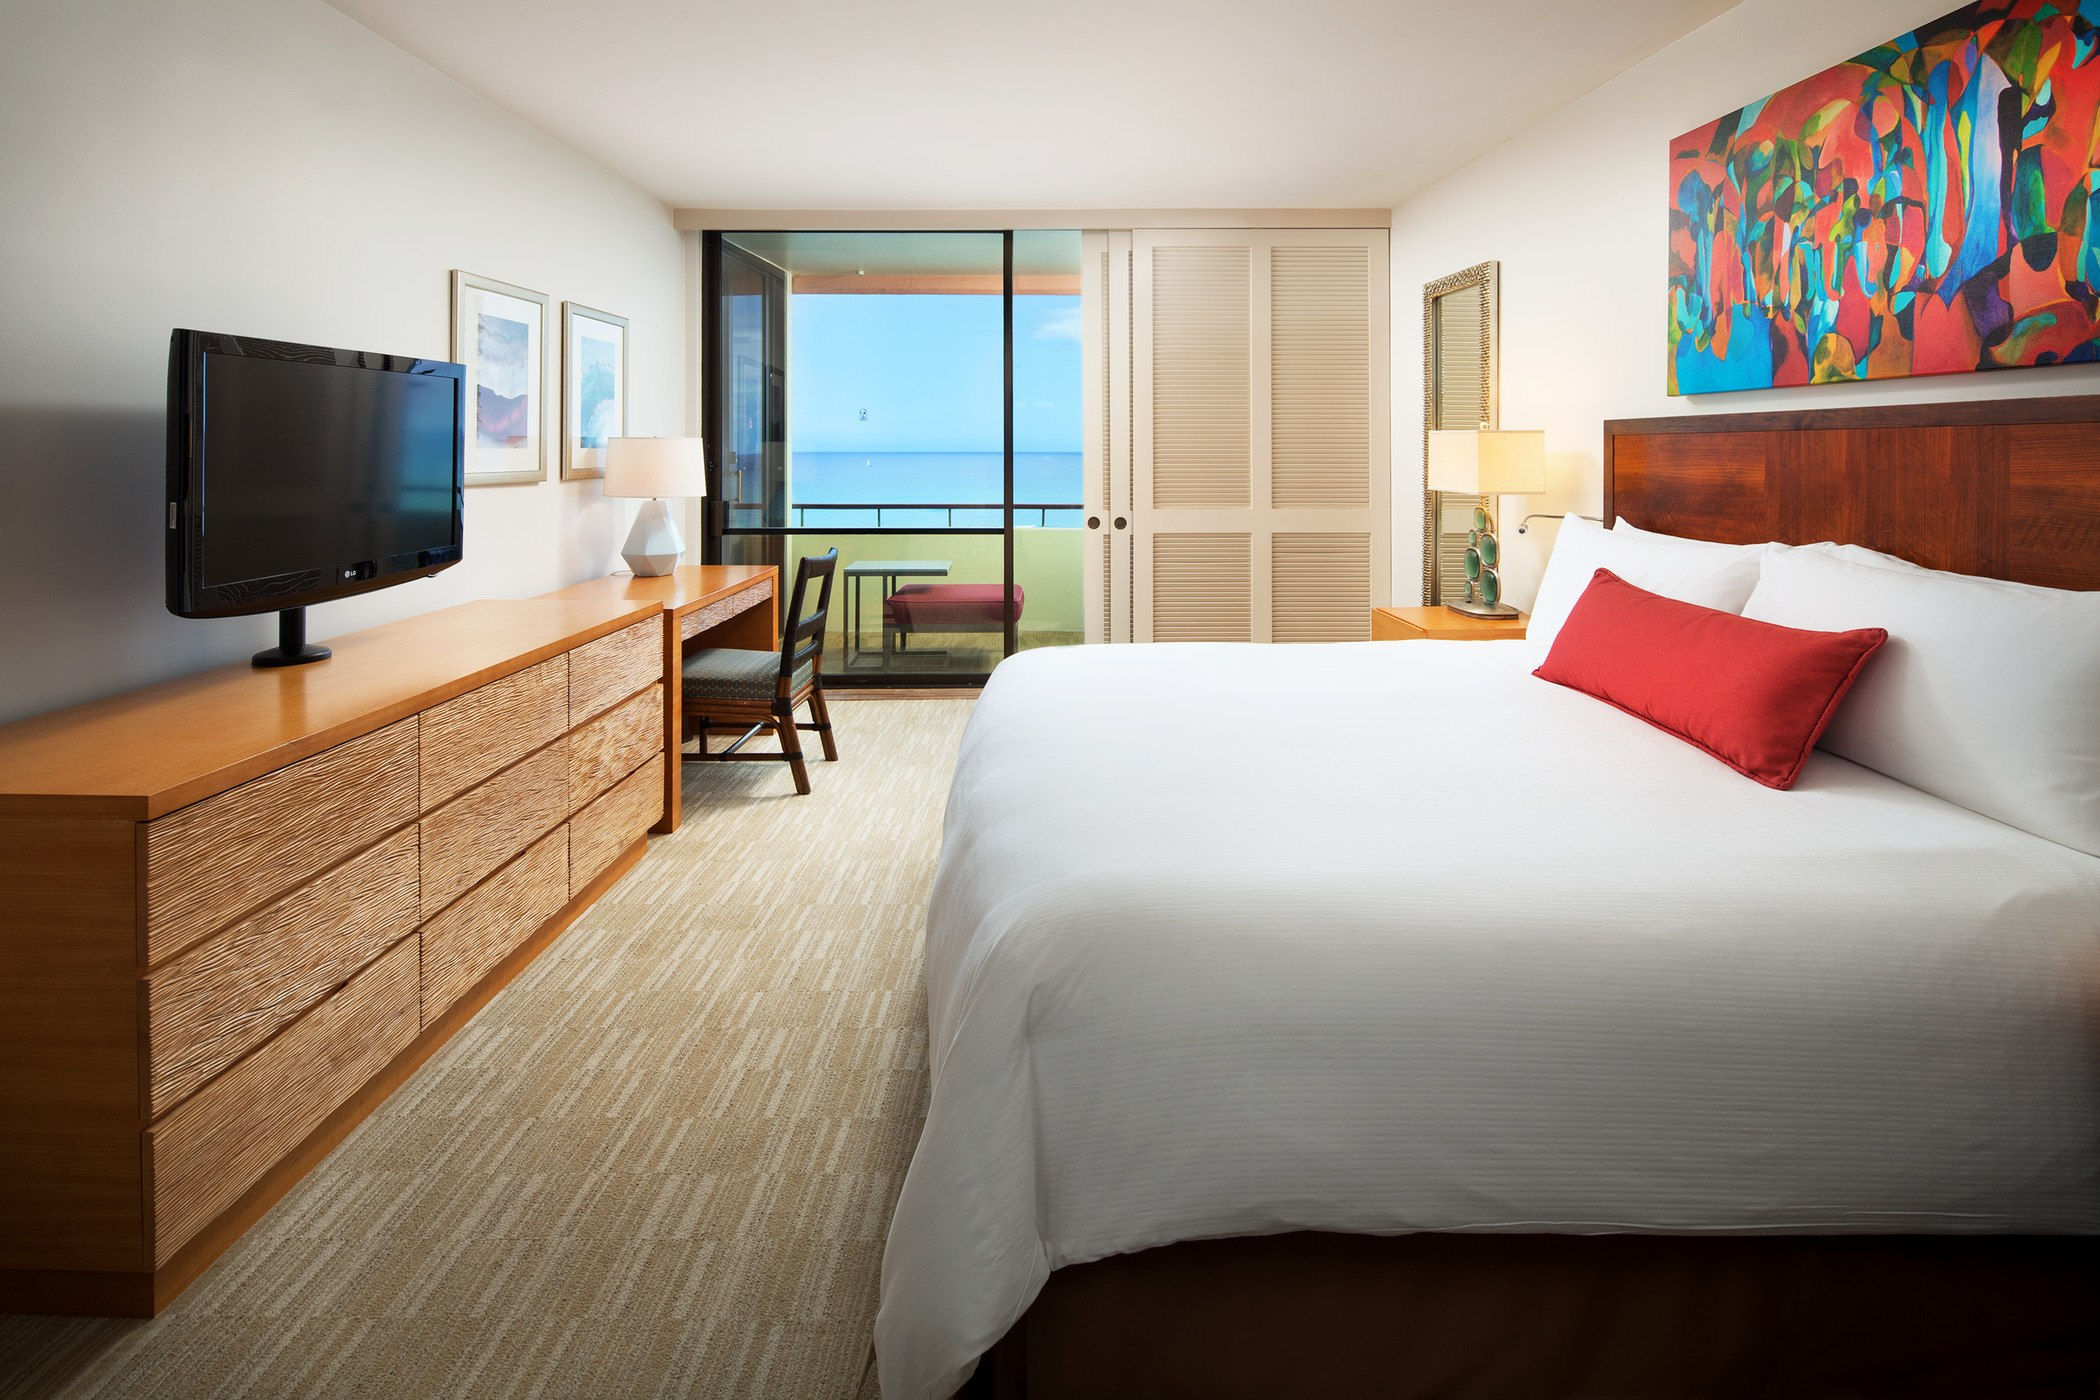 hotel suite with king bed and an ocean view balcony